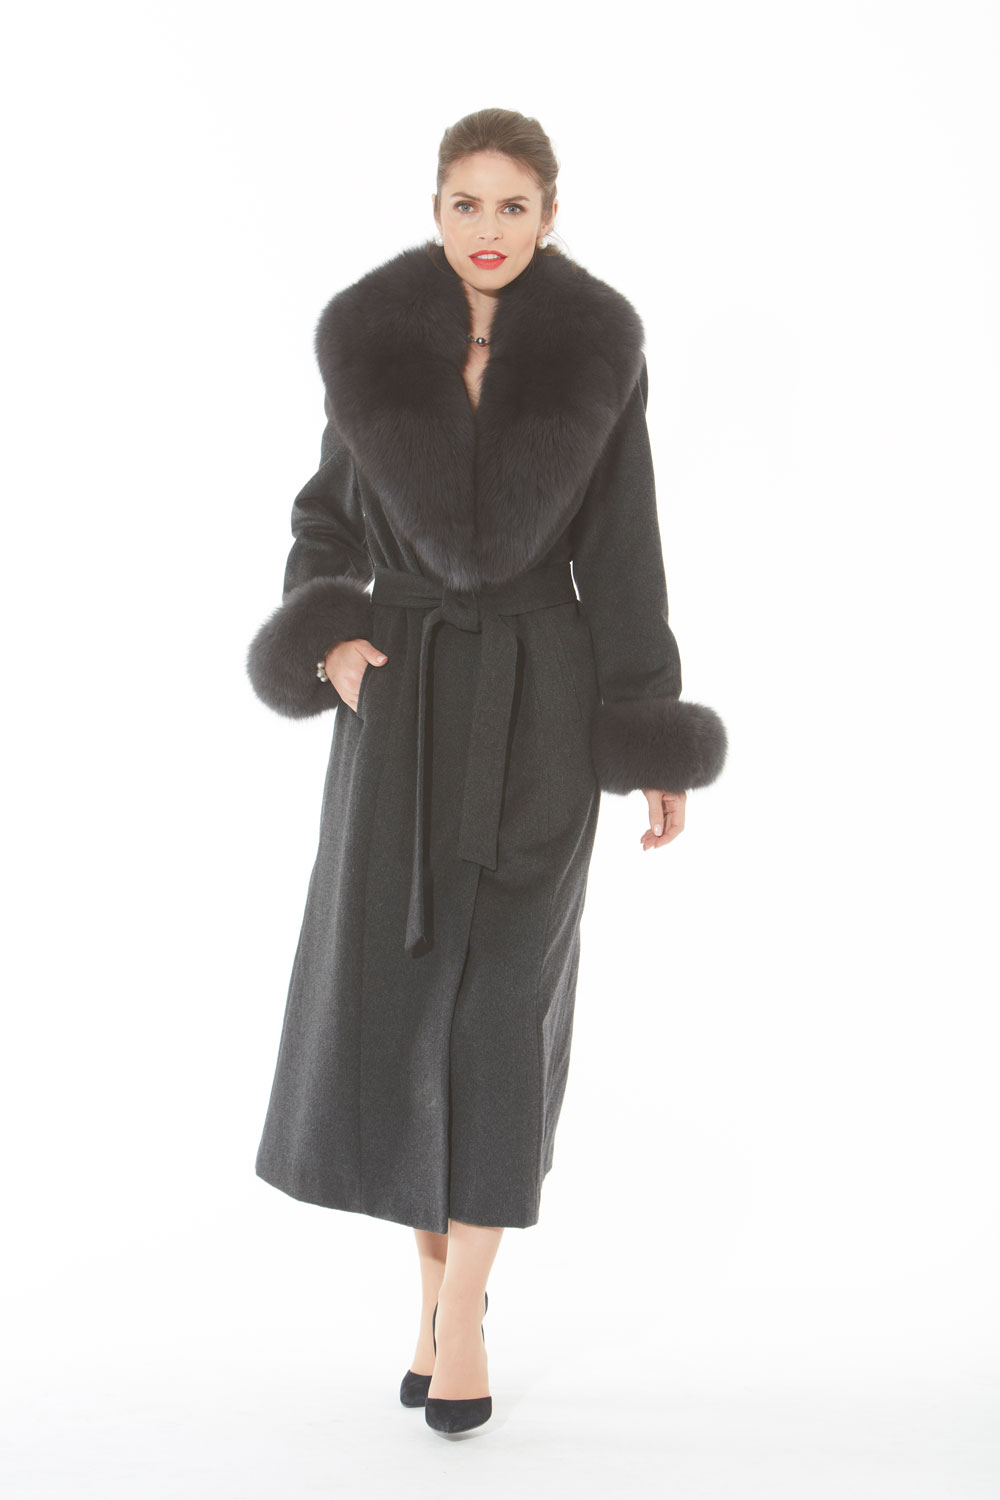 Greylady S Hearth February 2014: Charcoal Grey Women's Cashmere Coat